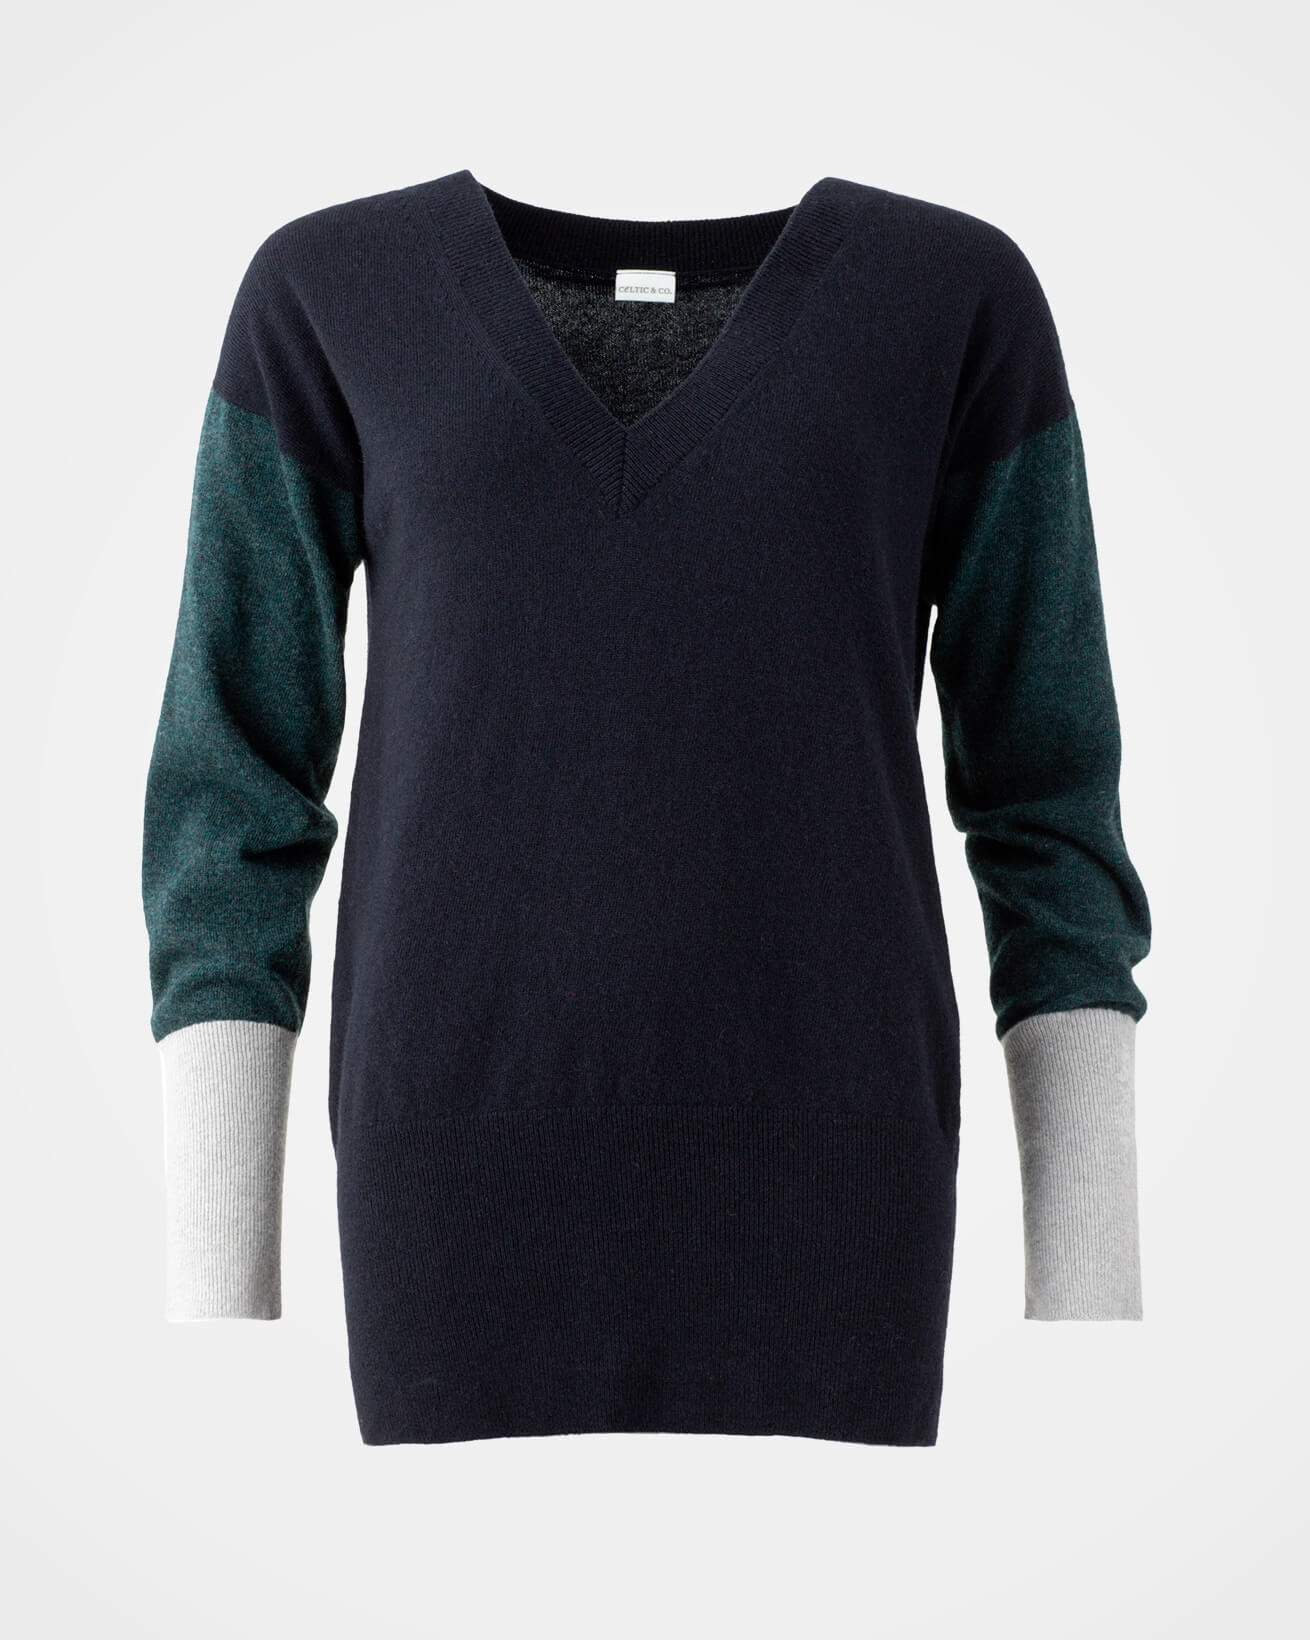 7659_supersoft-v-jumper_lugano-colourblock_front_web.jpg